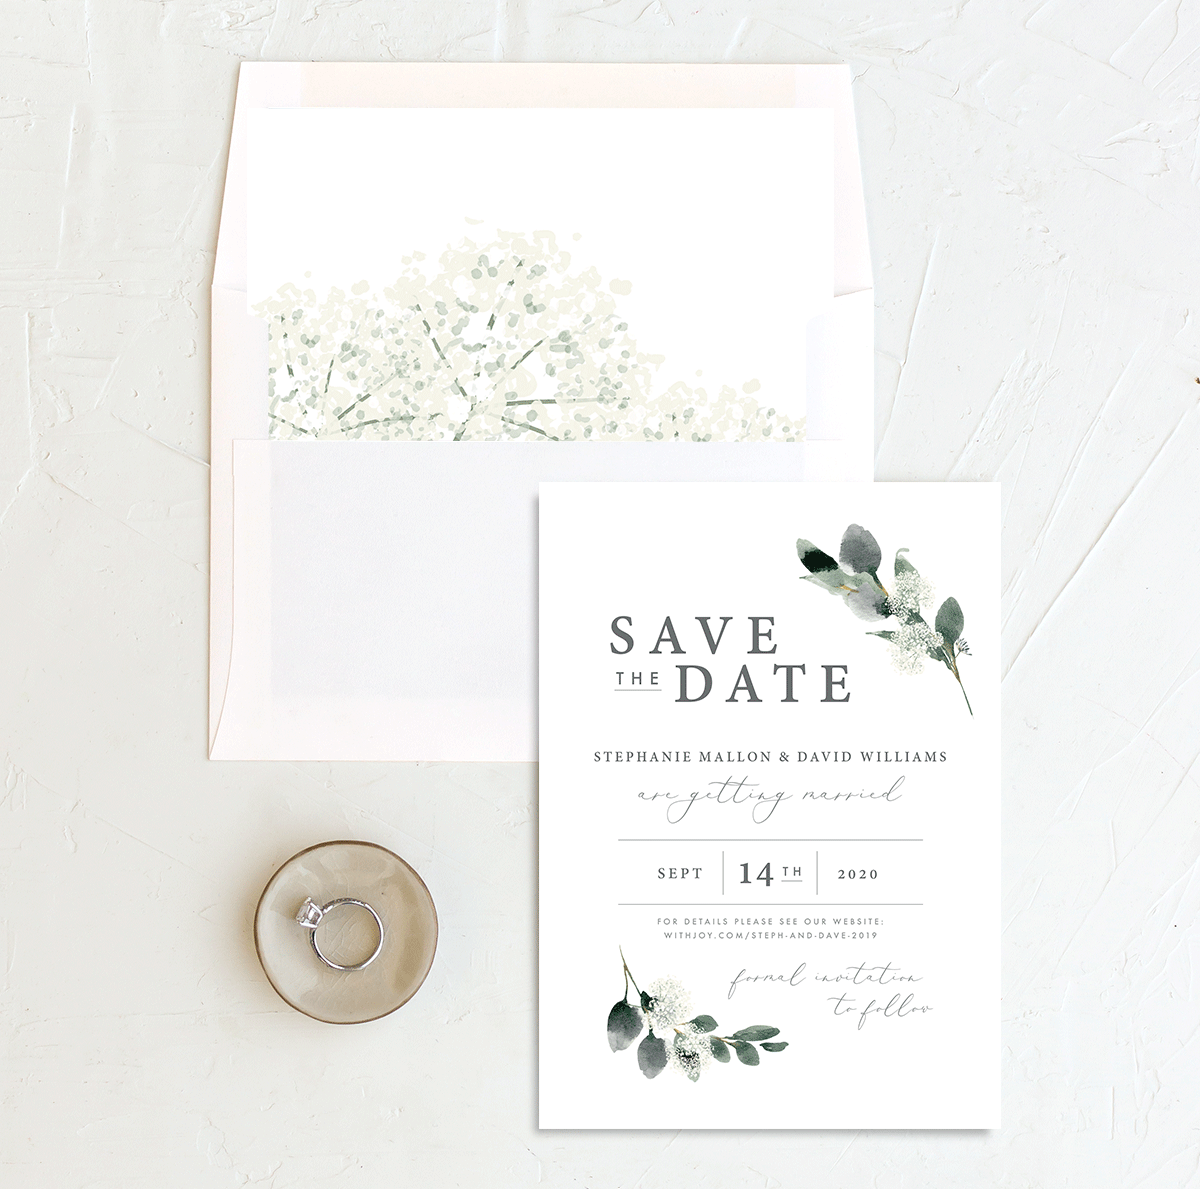 Elegant Greenery save the date w/ liner